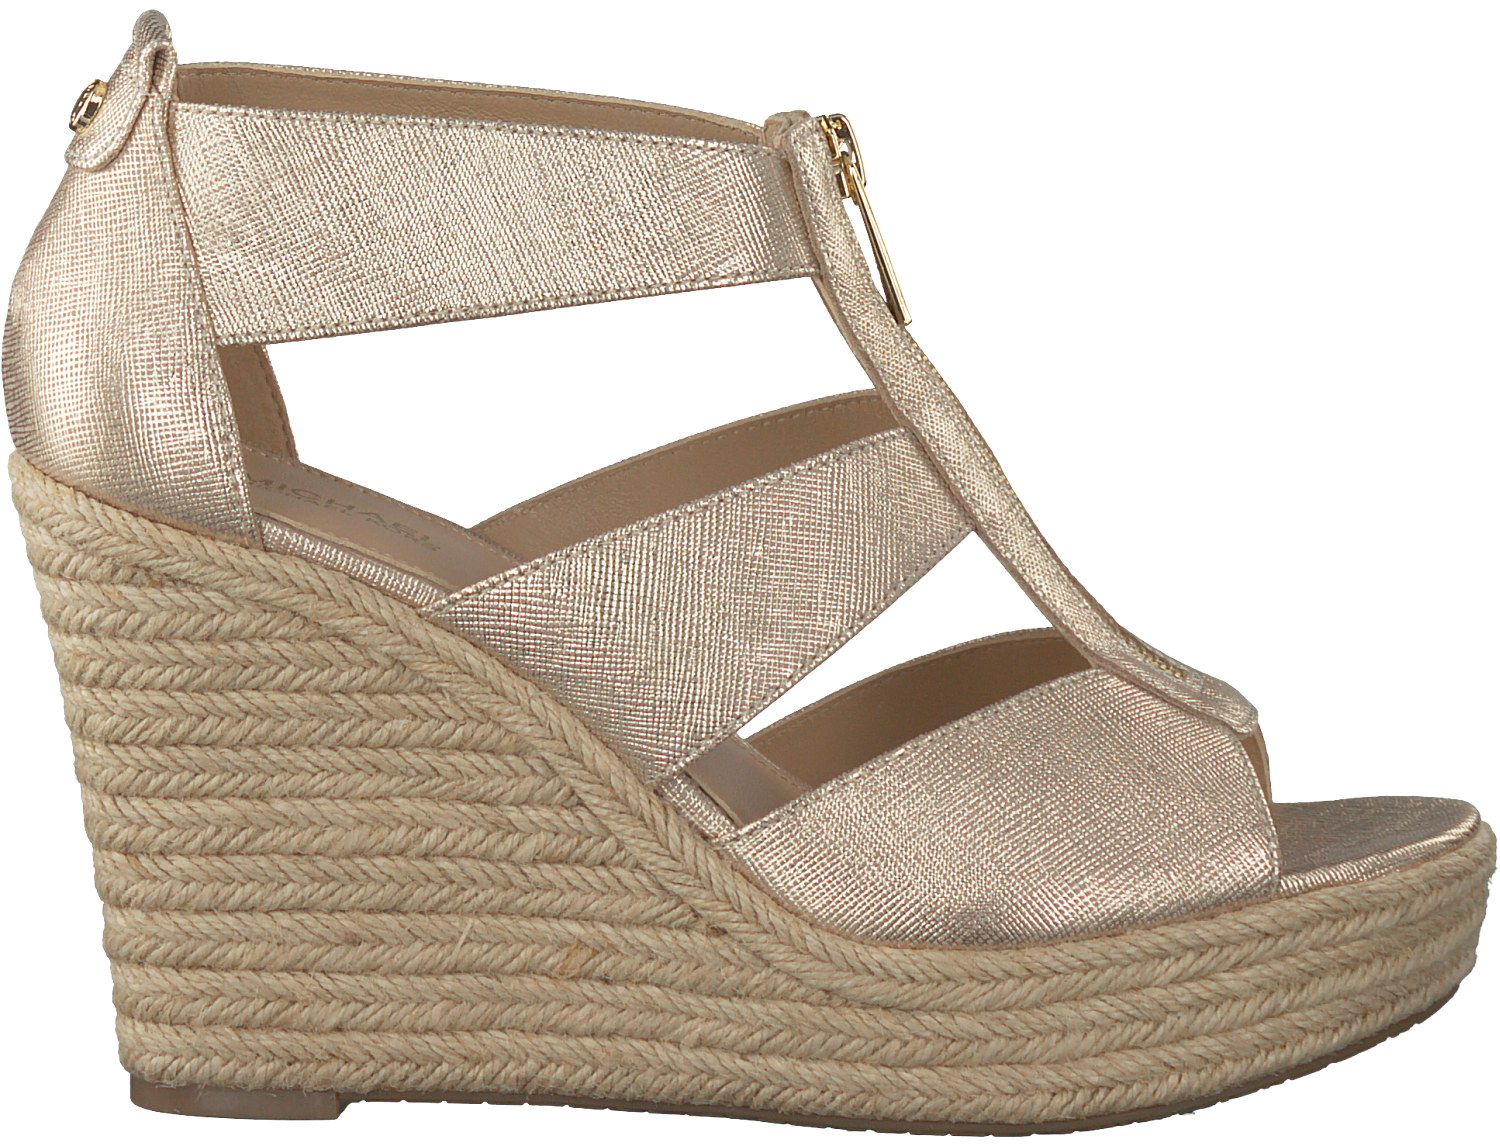 c7412dc2b36 Gouden MICHAEL KORS Sandalen DAMITA WEDGE - large. Next